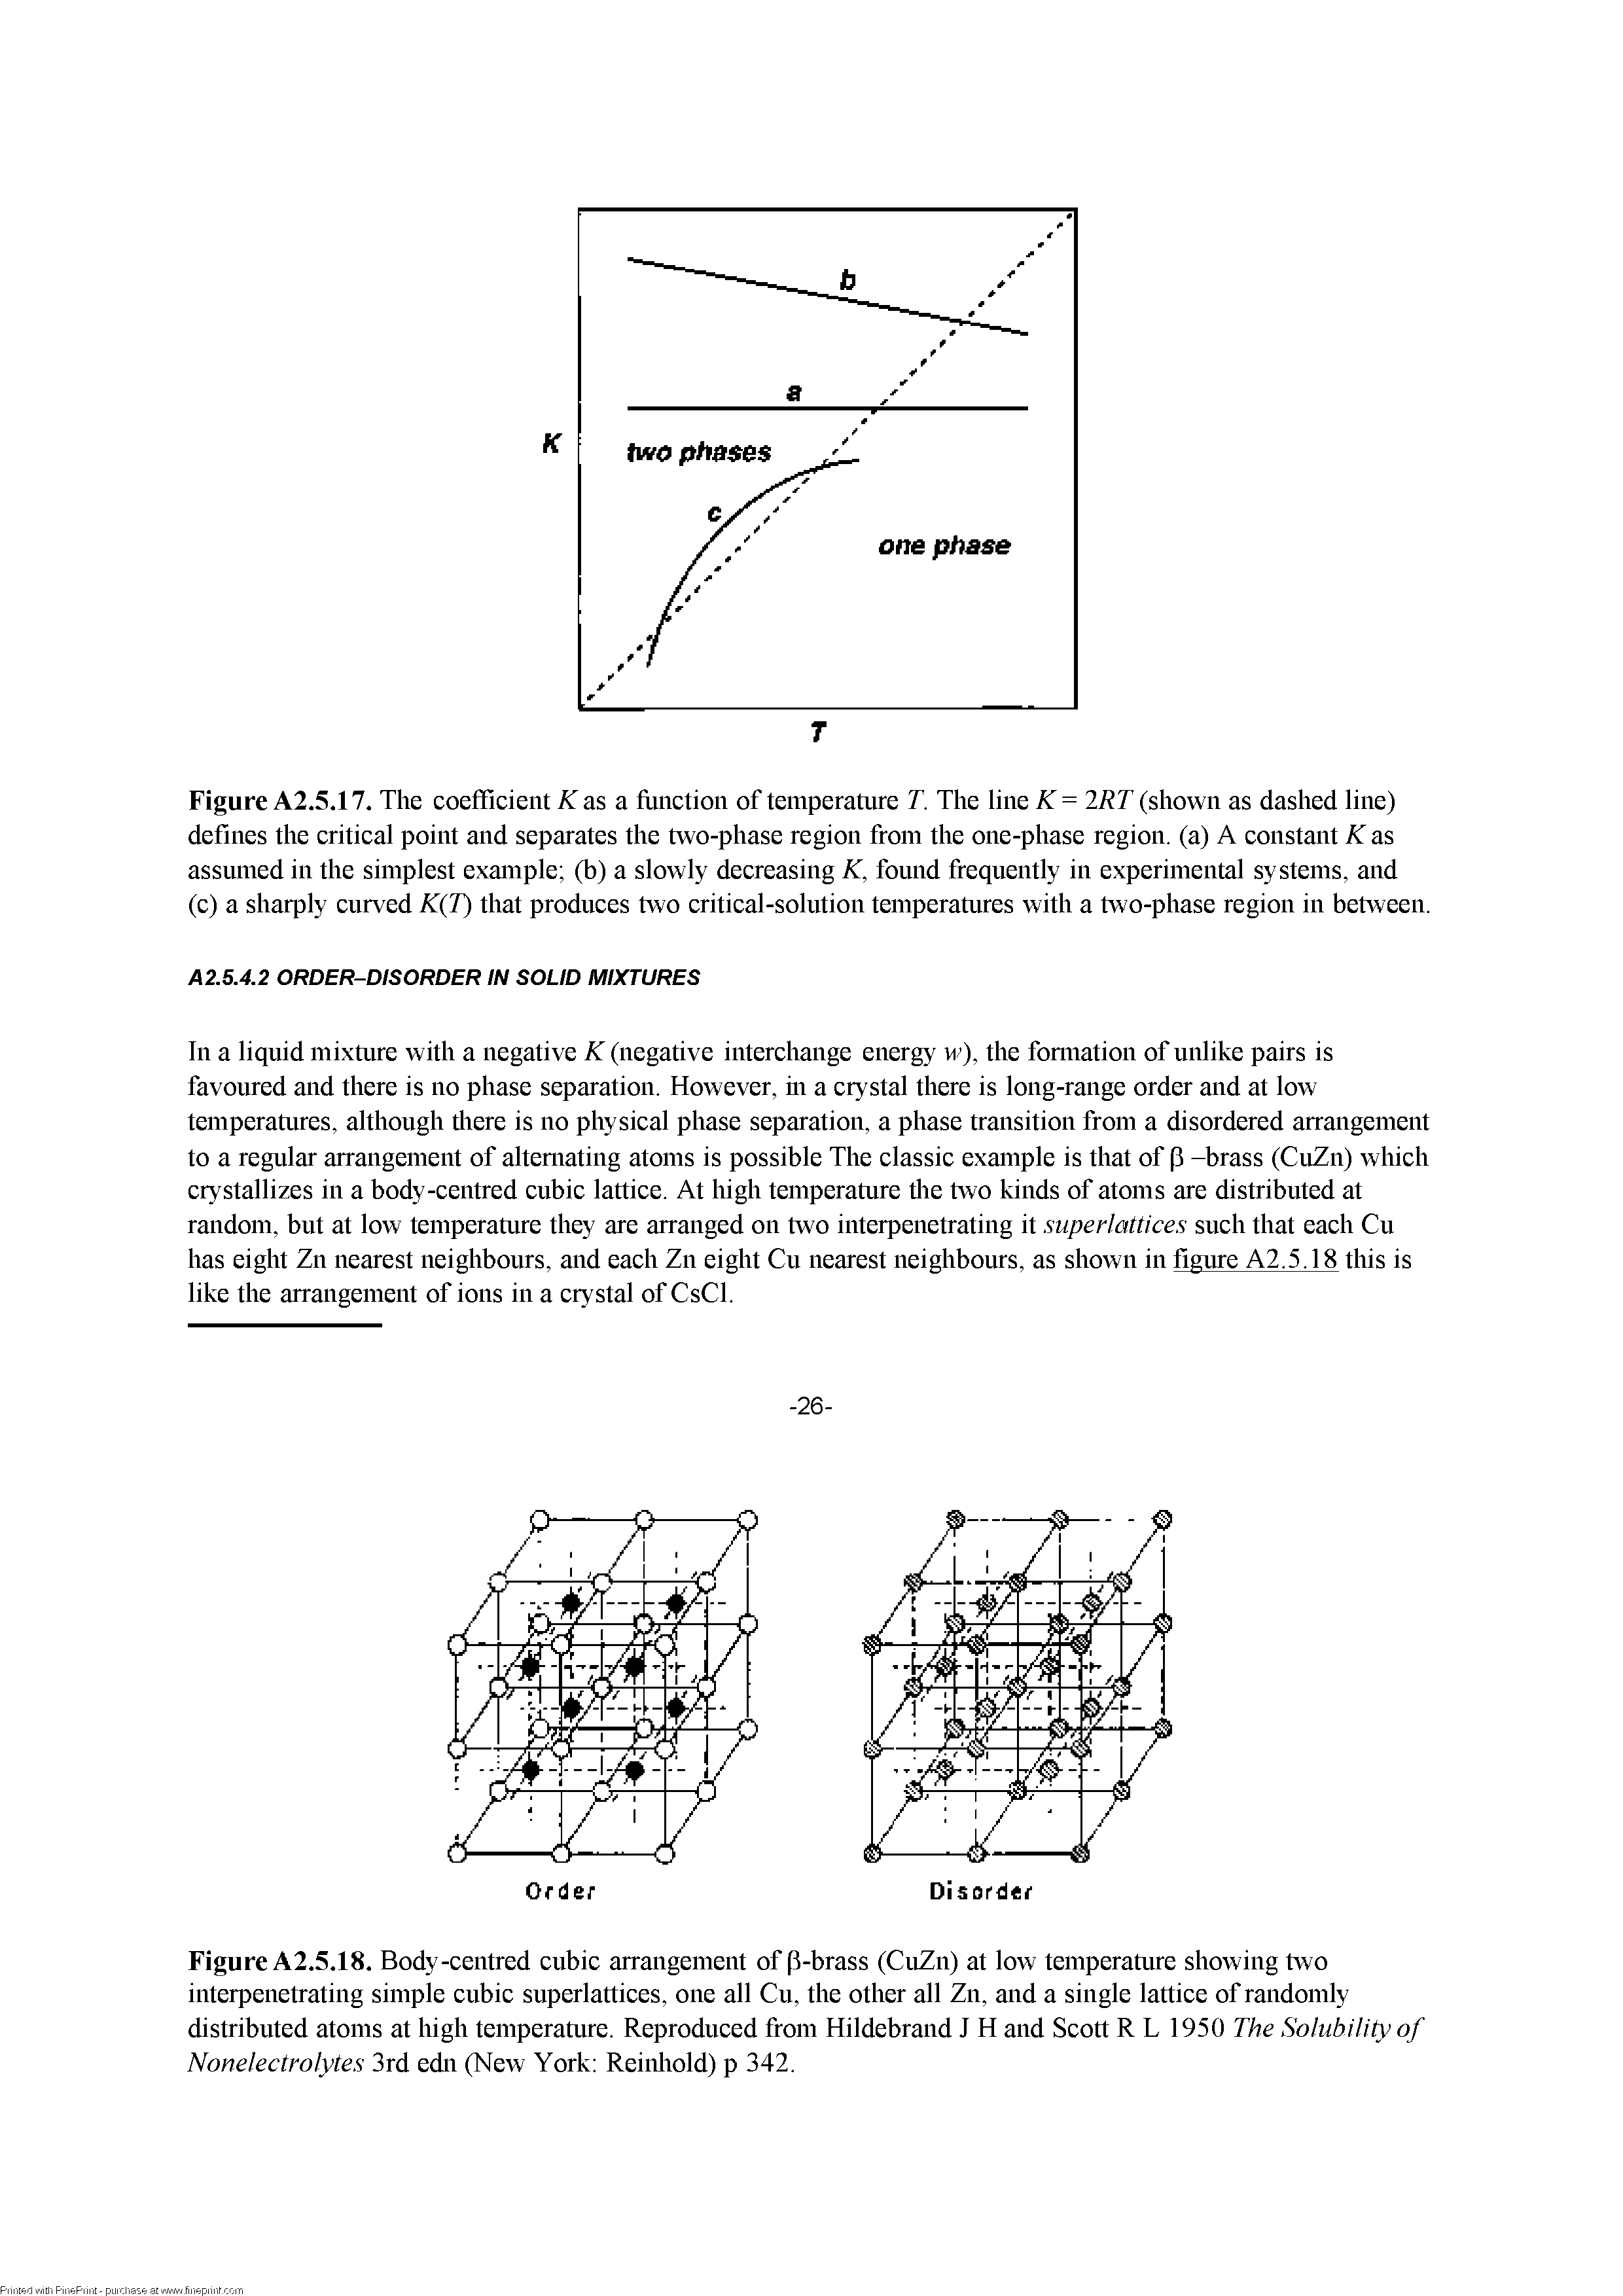 Figure A2.5.17. The coefficient Aias a fimction of temperature T. The line IRT (shown as dashed line) defines the critical point and separates the two-phase region from the one-phase region, (a) A constant K as assumed in the simplest example (b) a slowly decreasing K, found frequently in experimental systems, and (c) a sharply curved K T) that produces two critical-solution temperatures with a two-phase region in between.